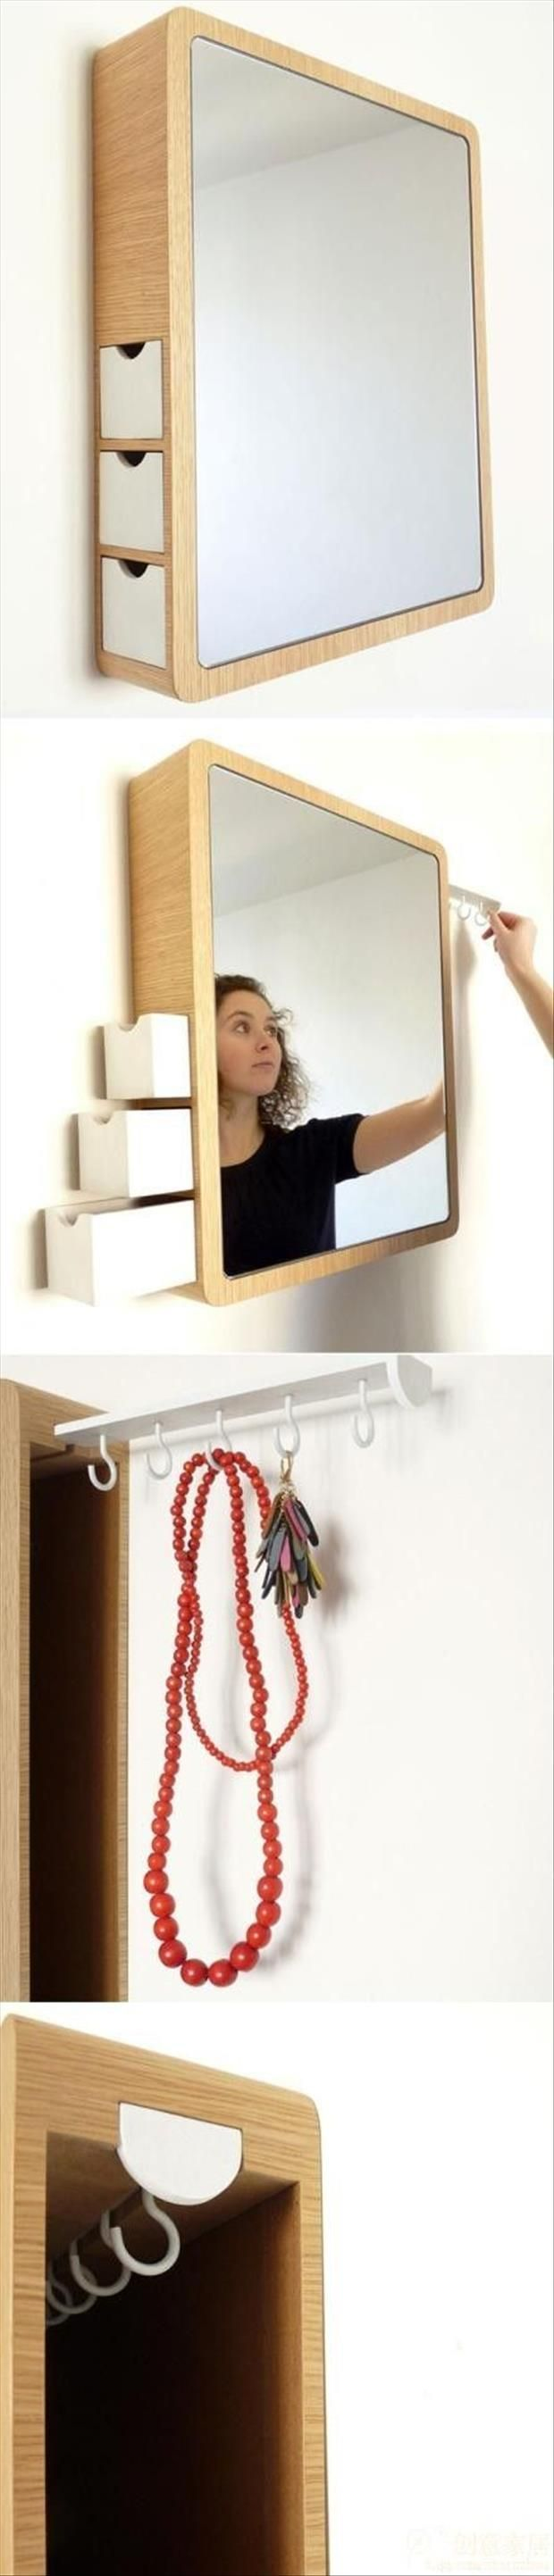 Simple Ideas That Are Borderline Genius (48 Pics) - Seriously, For Real? | From: http://roomdecorideas.eu/